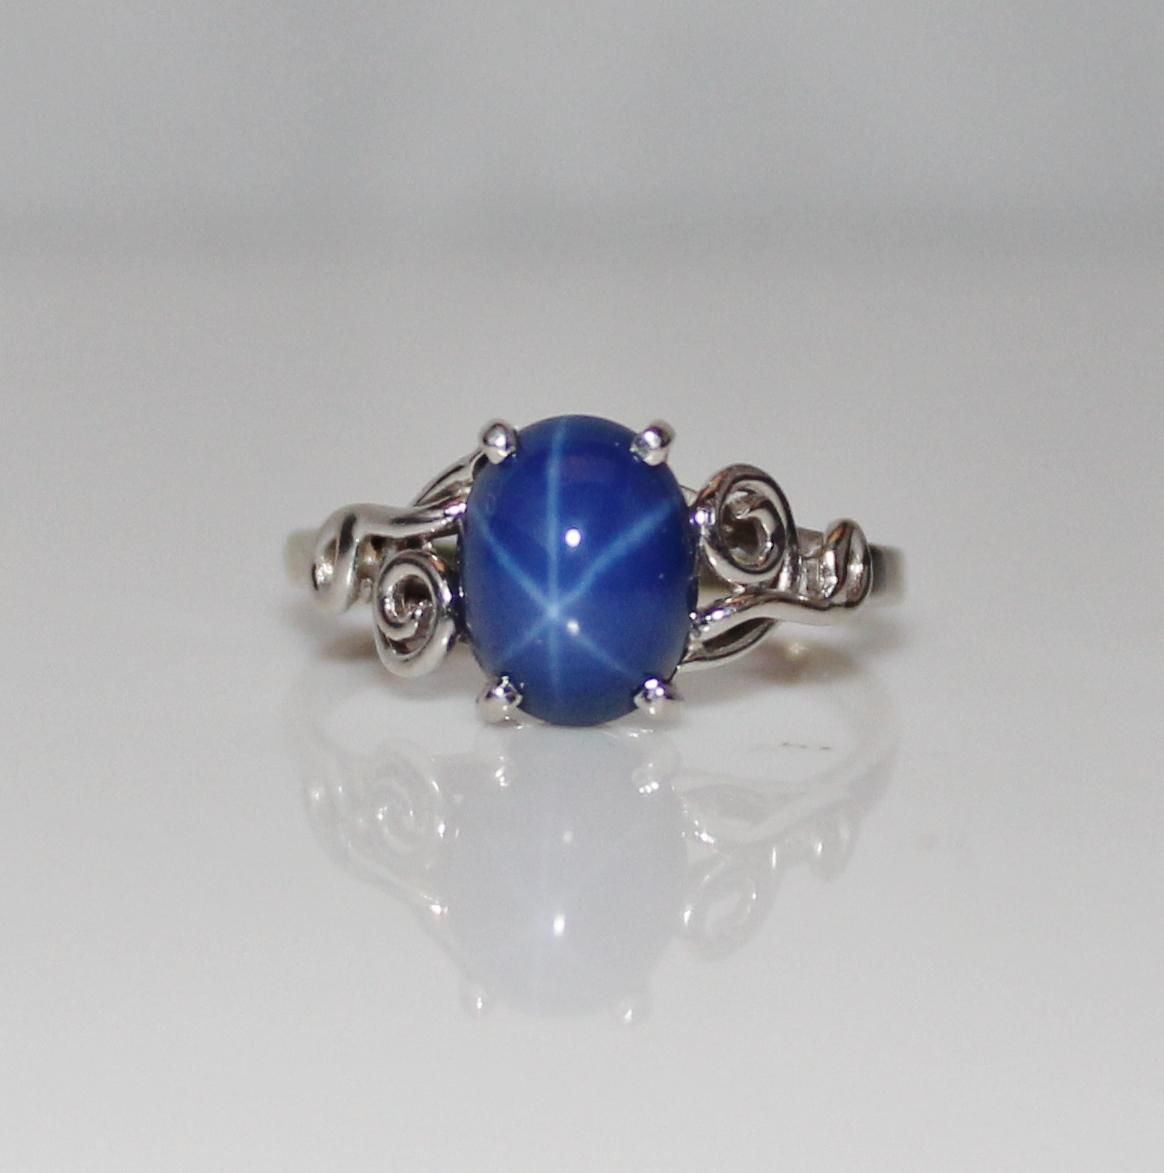 r ring dsc montana trade products gray collections pastel fair engagement mixed sapphire blue metal rings light